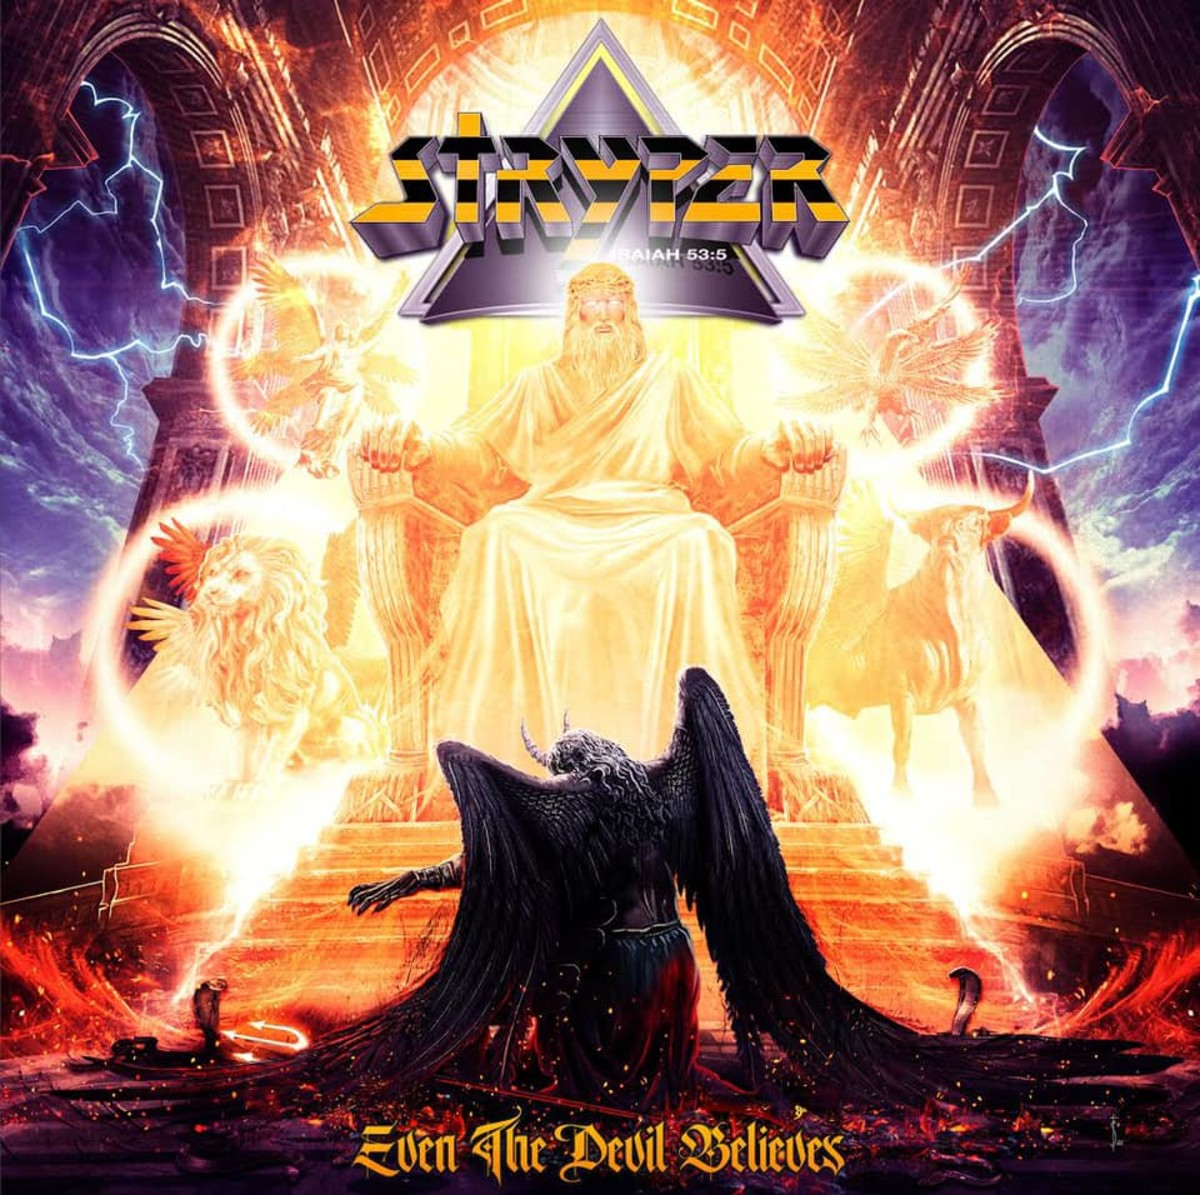 25 Fascinating Facts About Stryper